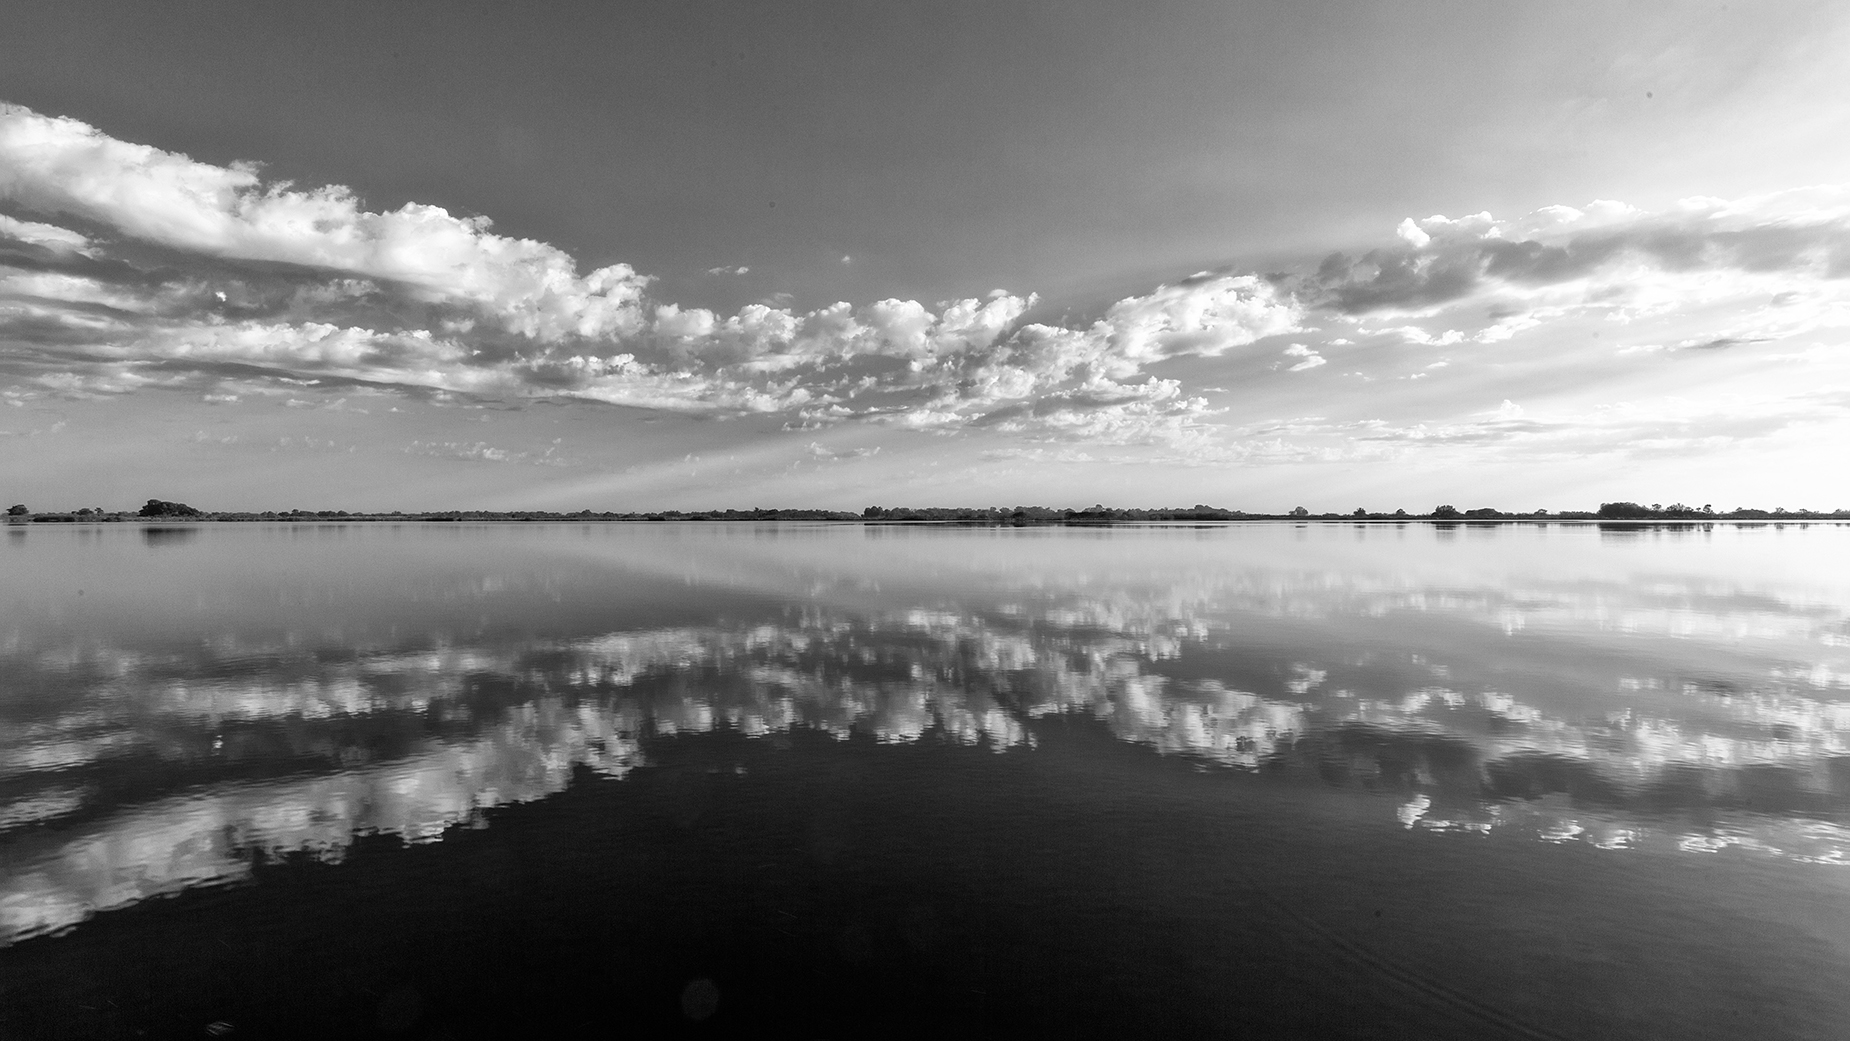 Okavango_Delta_Reflection_4